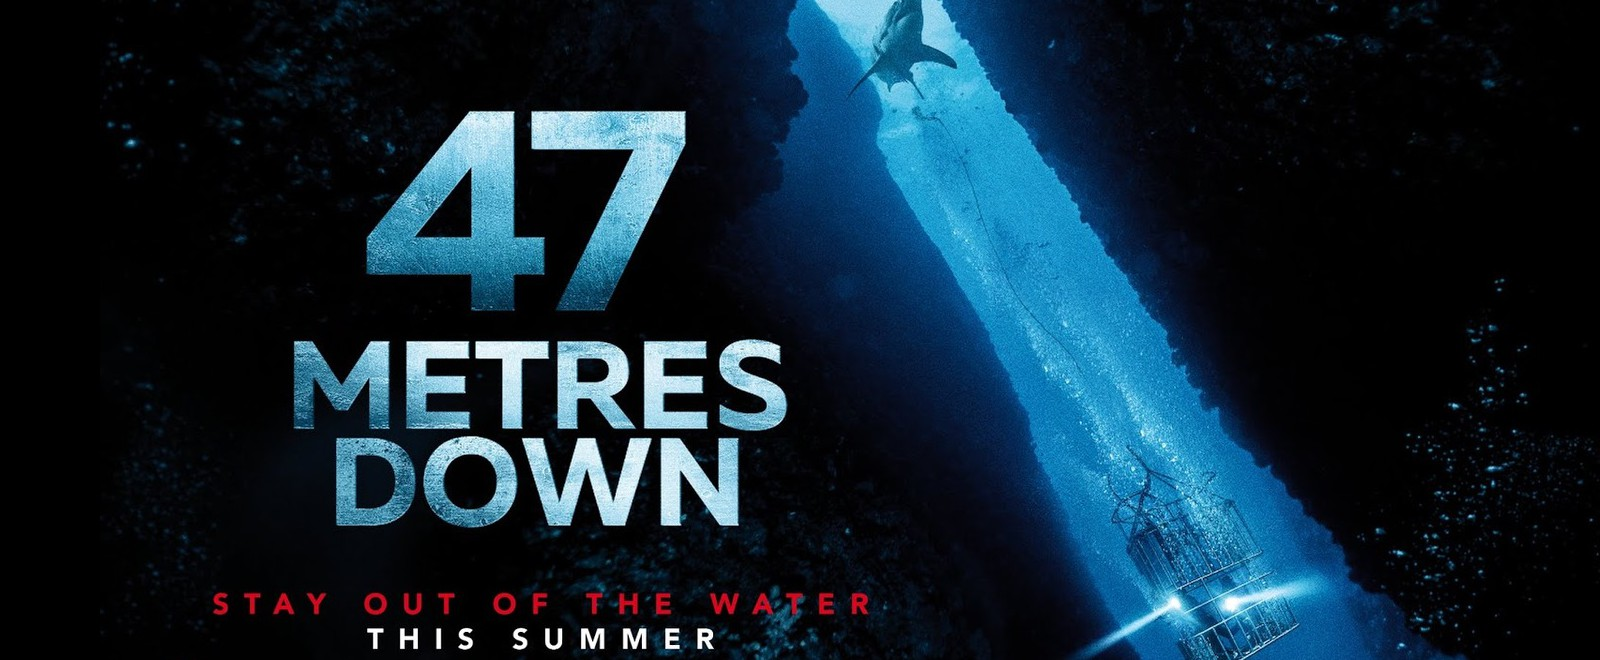 47 METRES DOWN trailer